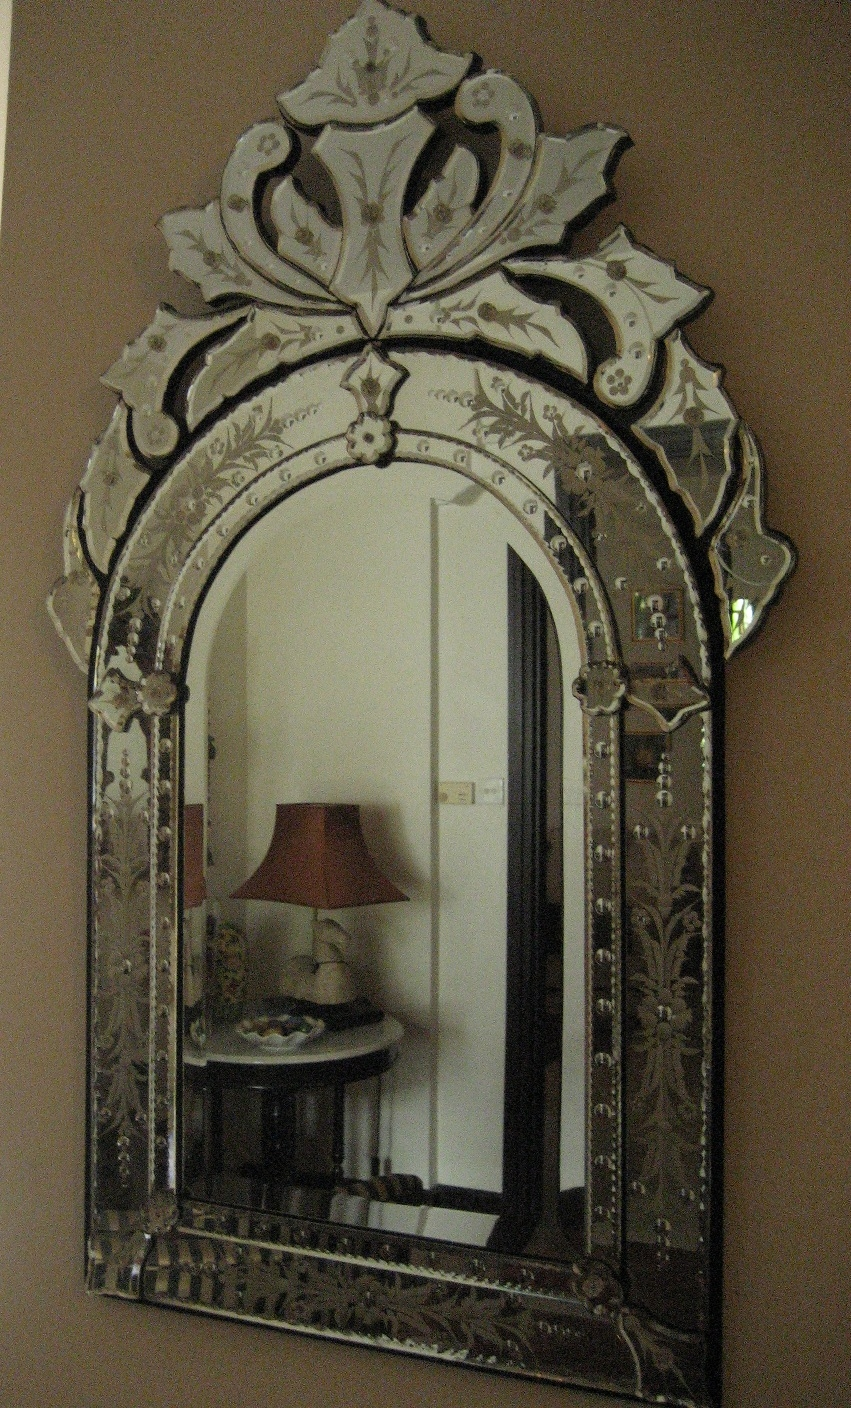 Venetian Mirrors Decor Venetian And Home Pertaining To Small Venetian Mirrors (Image 13 of 15)